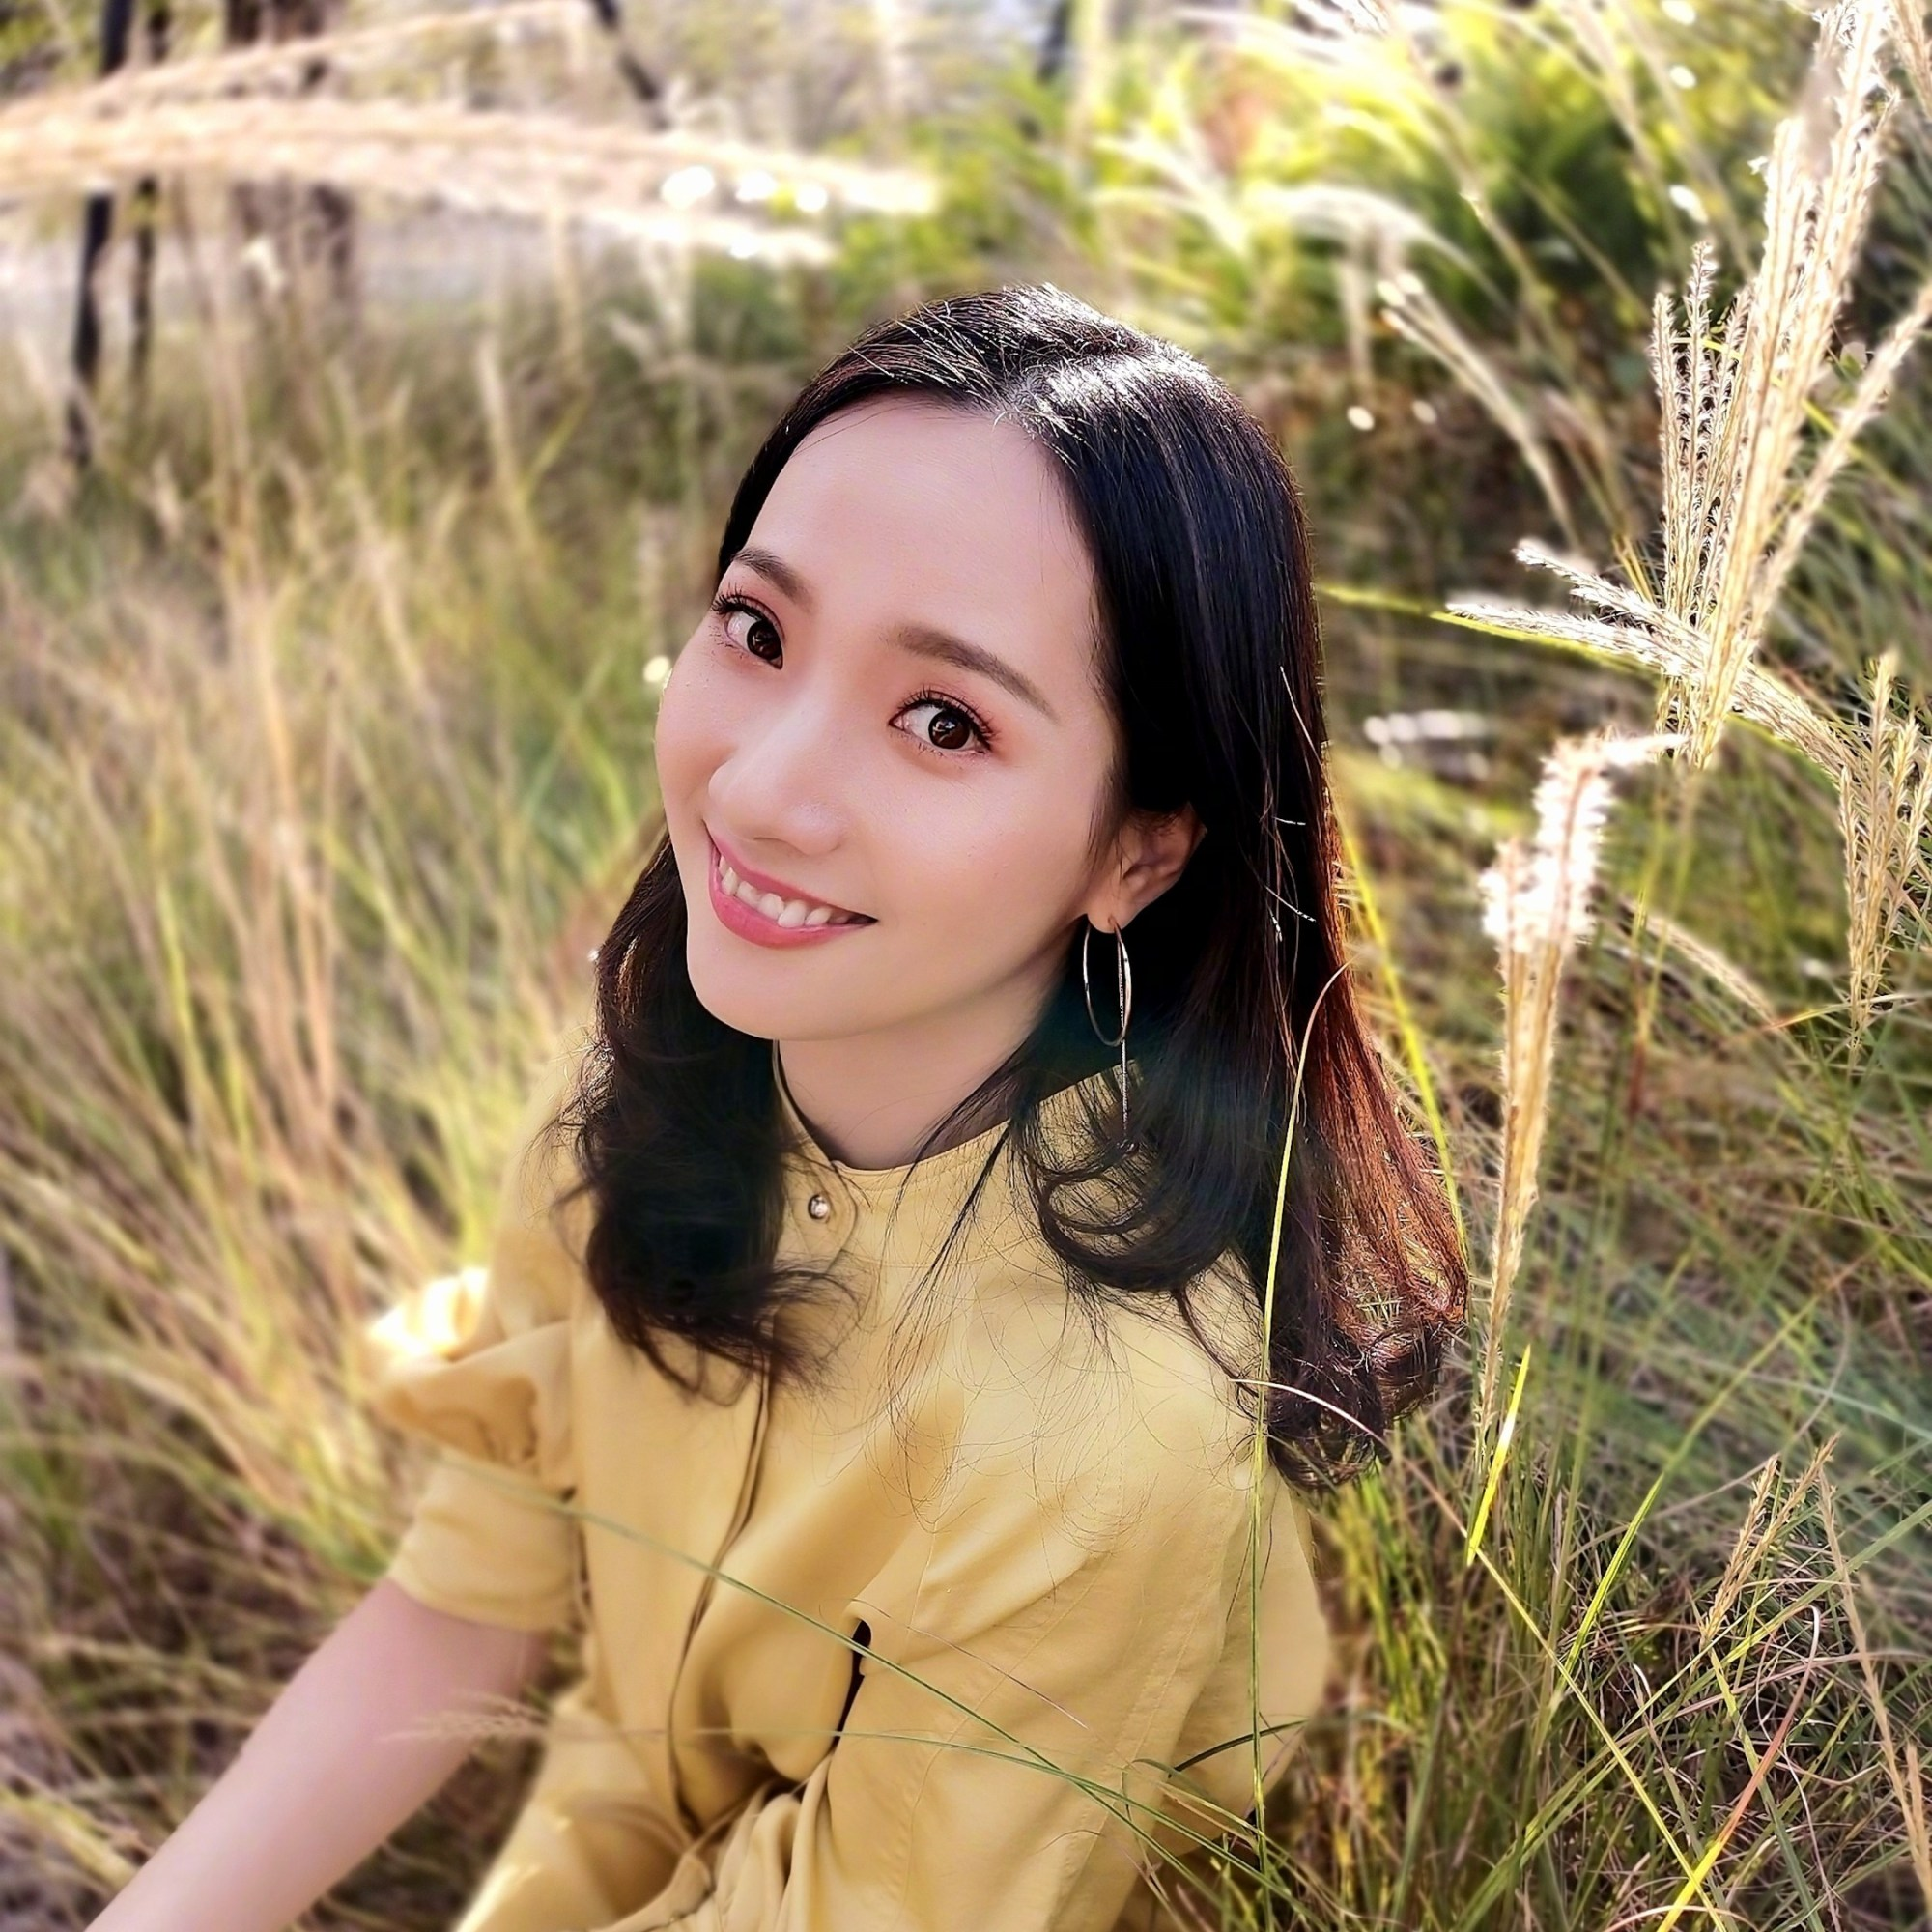 Honor V30 Series Front Camera Sample, honor v30 pro front camera sample